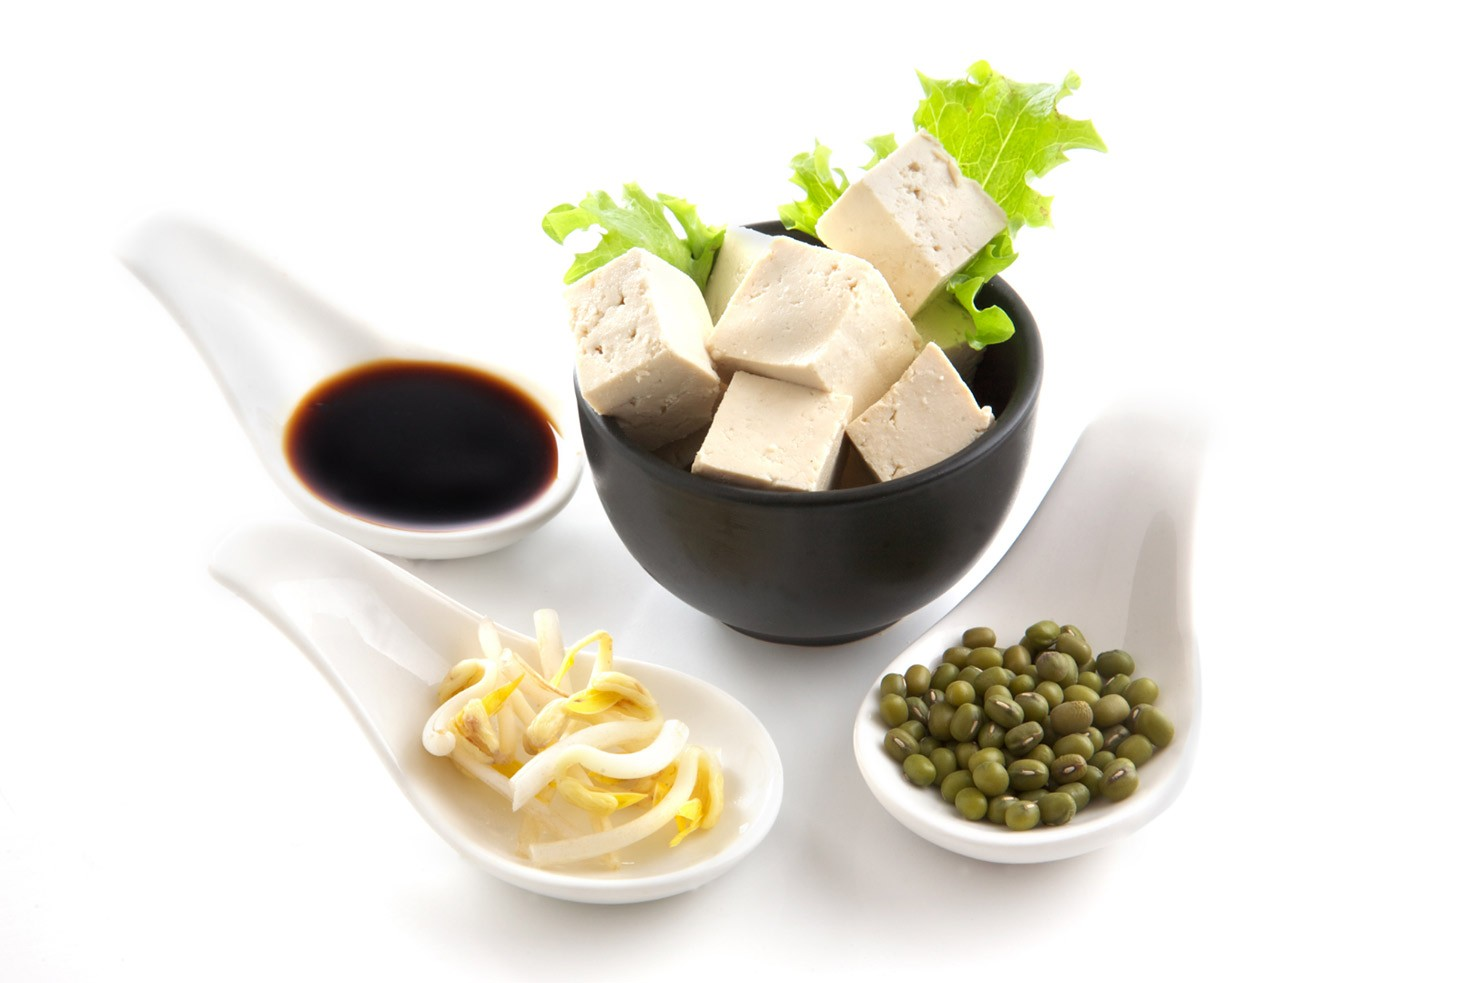 Soy products like tofu, soy sauce, soy beans etc. | Hurry The Food Up